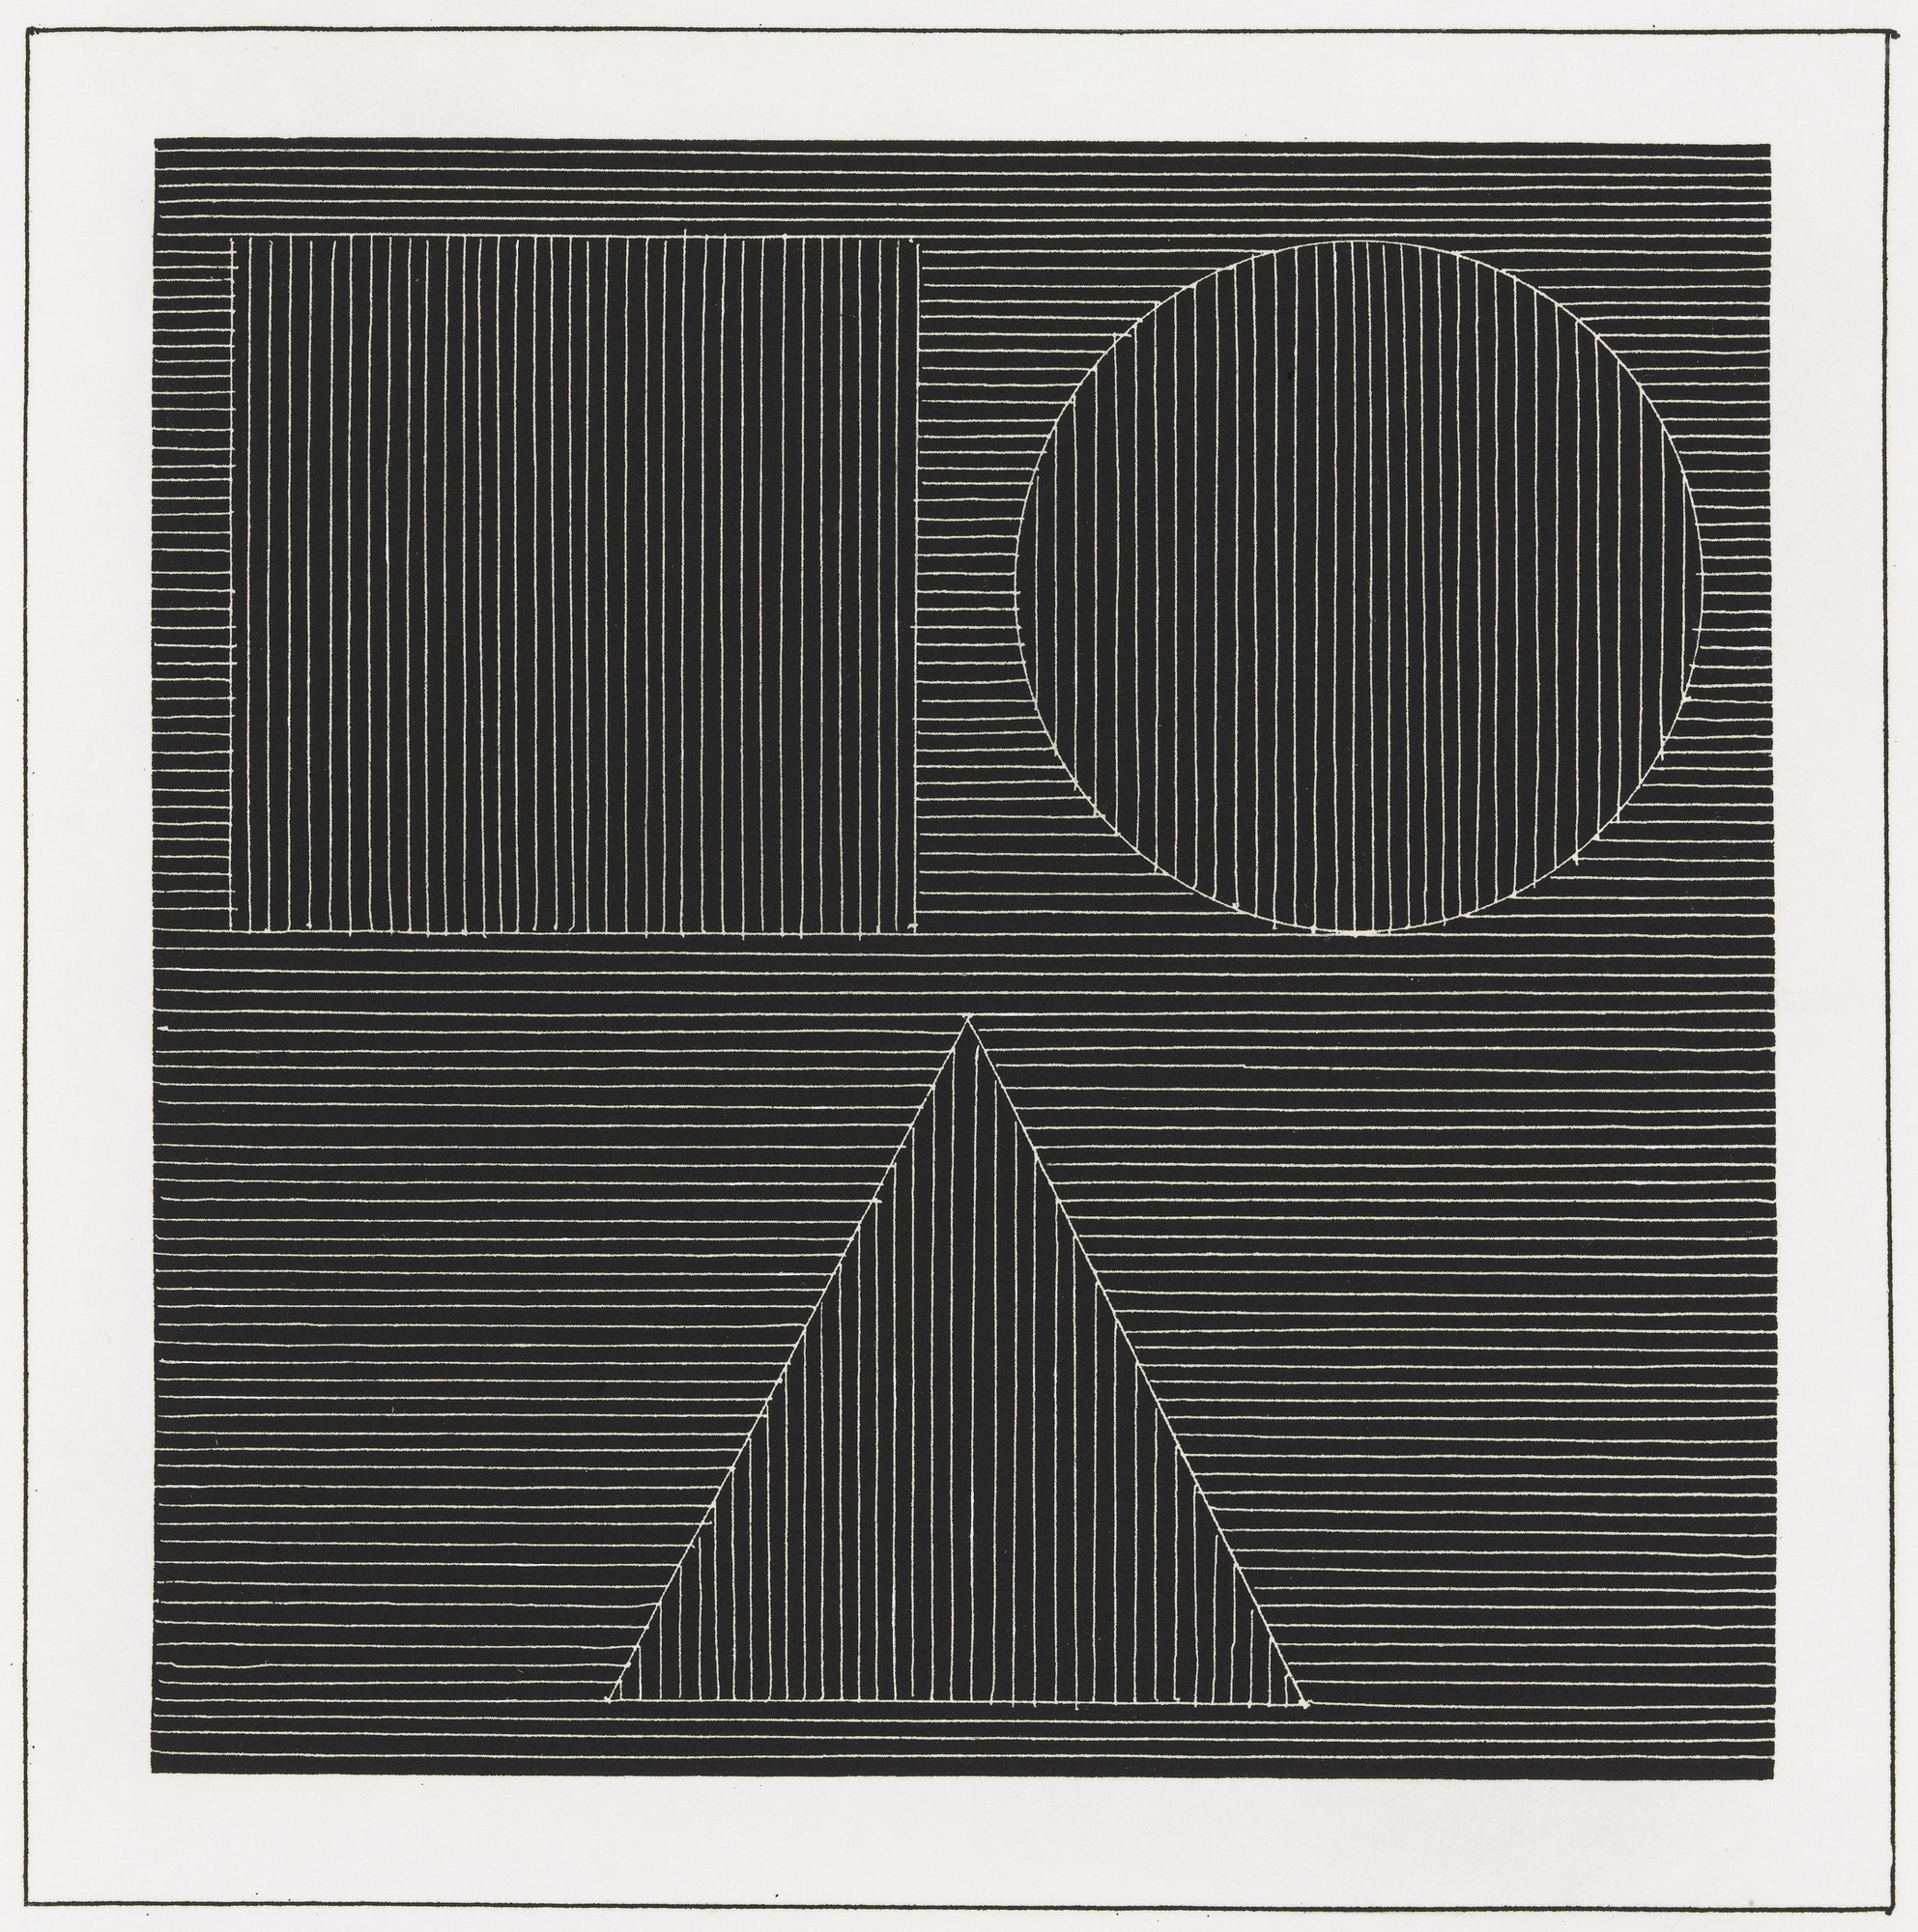 Sol LeWitt. Plate (folio 23) from Six Geometric Figures and All Their Combinations, Volume I. 1980